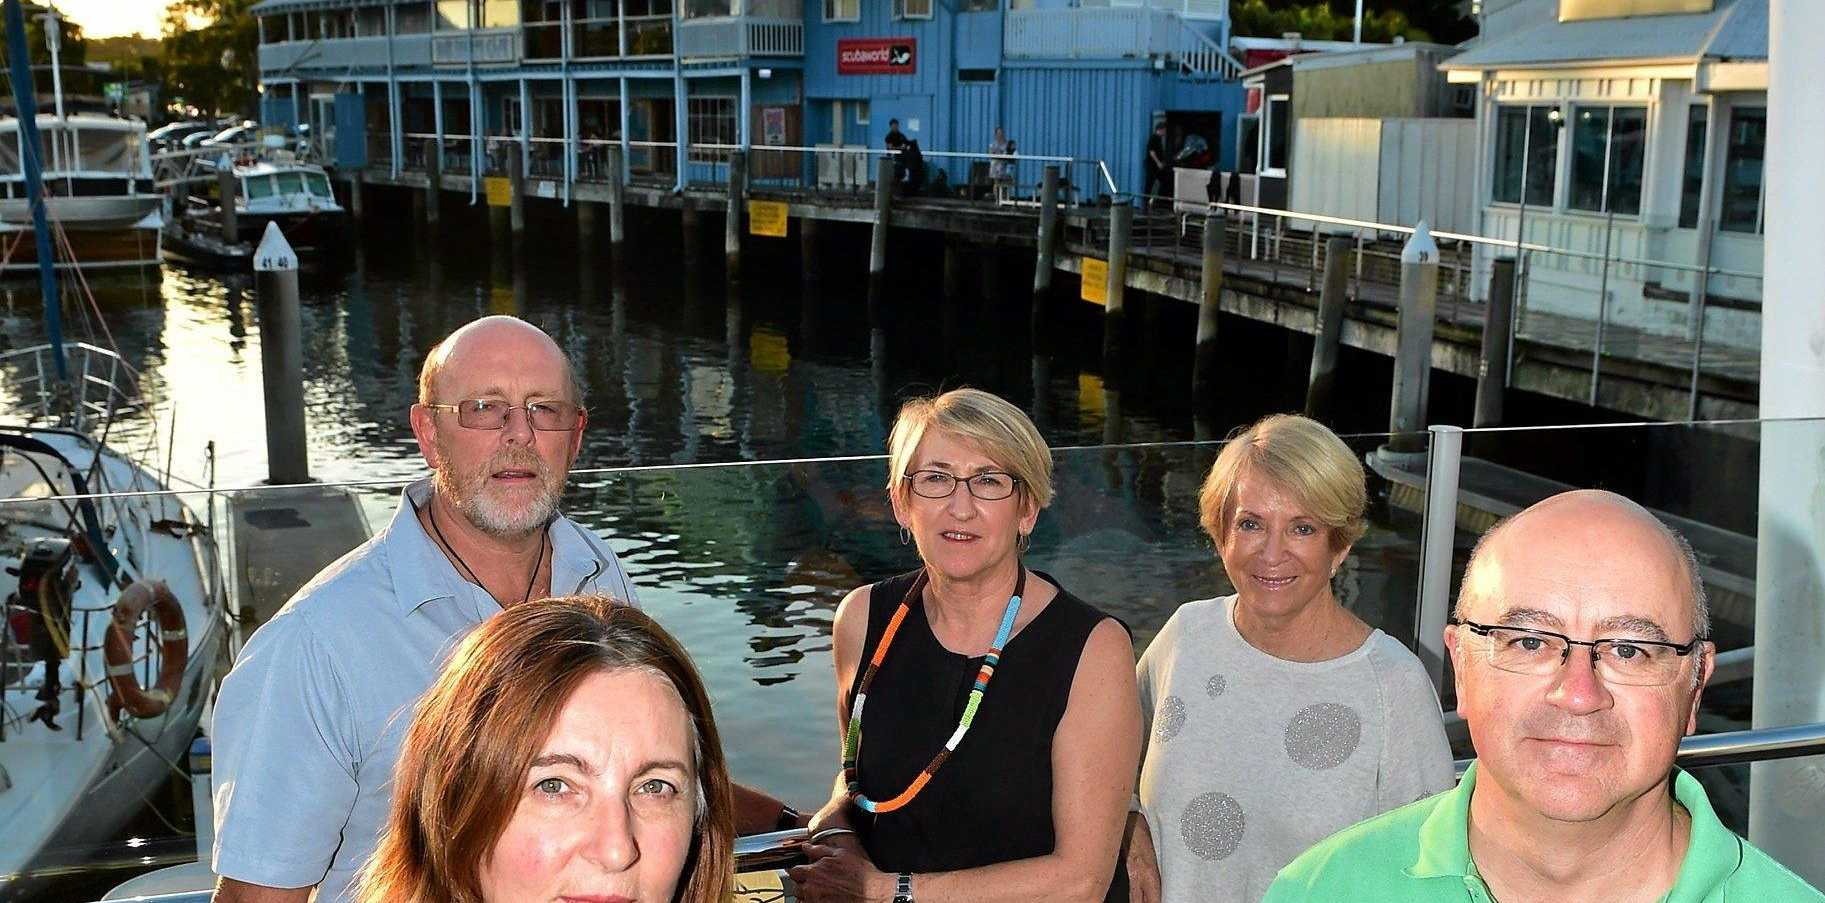 Spit Protection Association members share their views on the Wharf development. Charlie Silcock, Anna Neep, Judy Mewing, Joclyn Walker and Martin Neep.